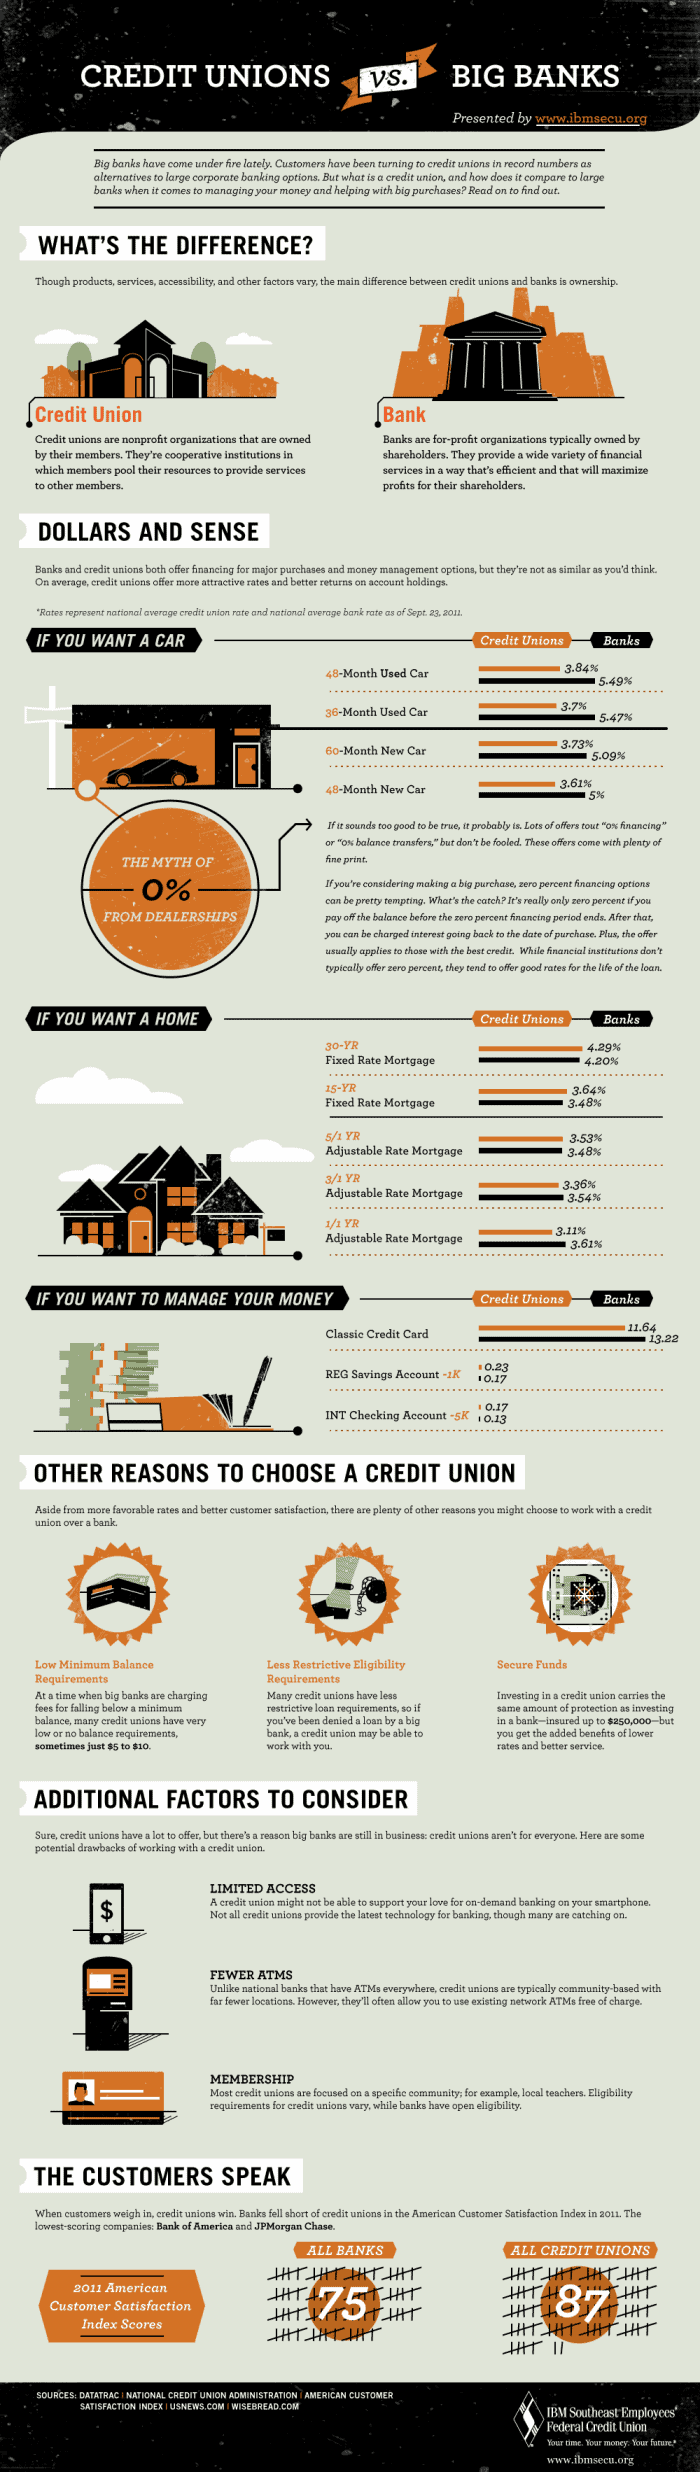 Banks vs Credit Unions